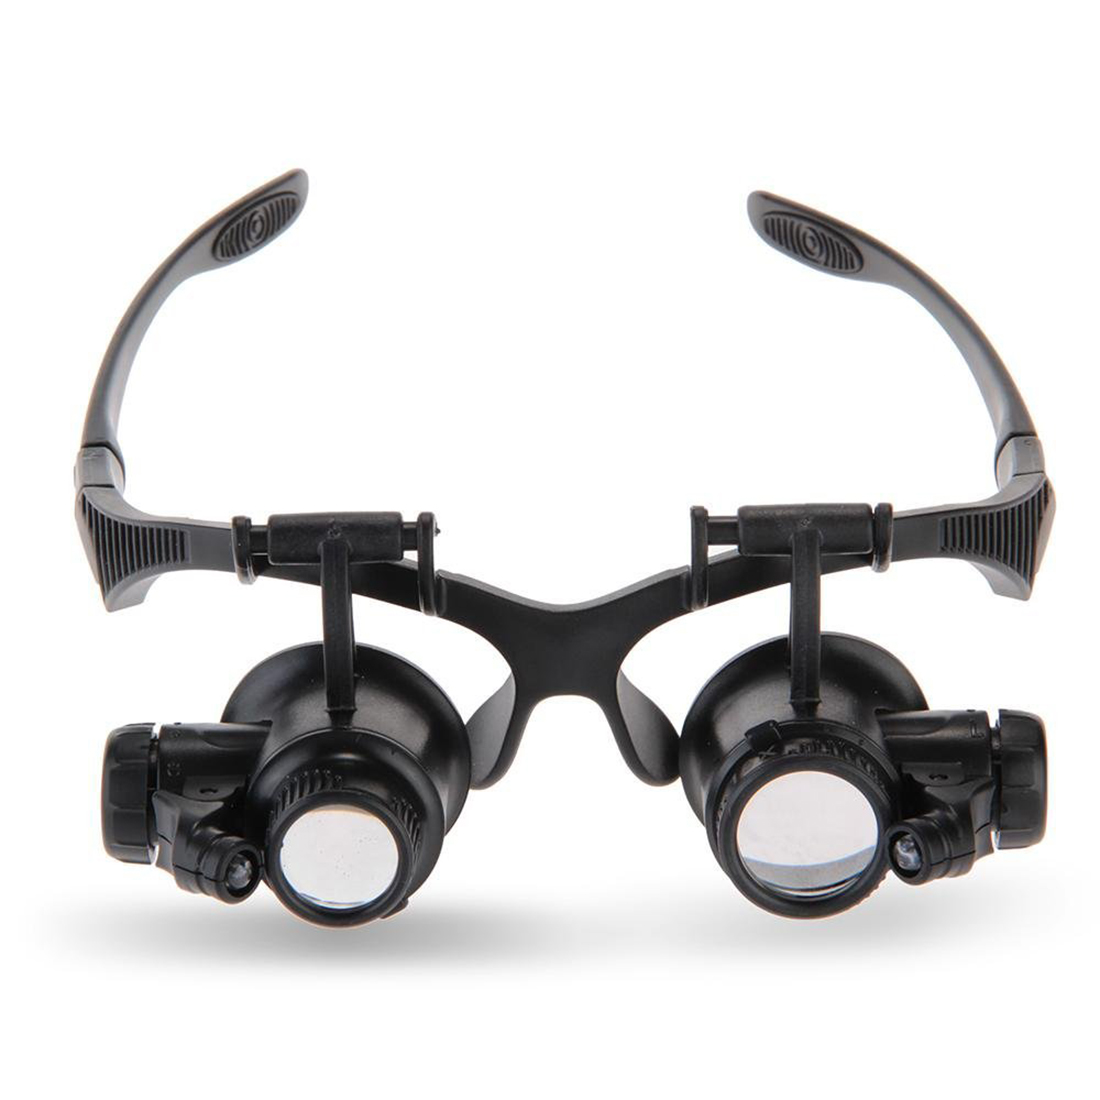 Magnifying Glasses <font><b>10X</b></font> <font><b>15X</b></font> <font><b>20X</b></font> <font><b>25X</b></font> Eye Jewelry <font><b>Watch</b></font> <font><b>Repair</b></font> <font><b>Magnifier</b></font> Glasses <font><b>With</b></font> <font><b>2</b></font> <font><b>LED</b></font> Lights Microscope image